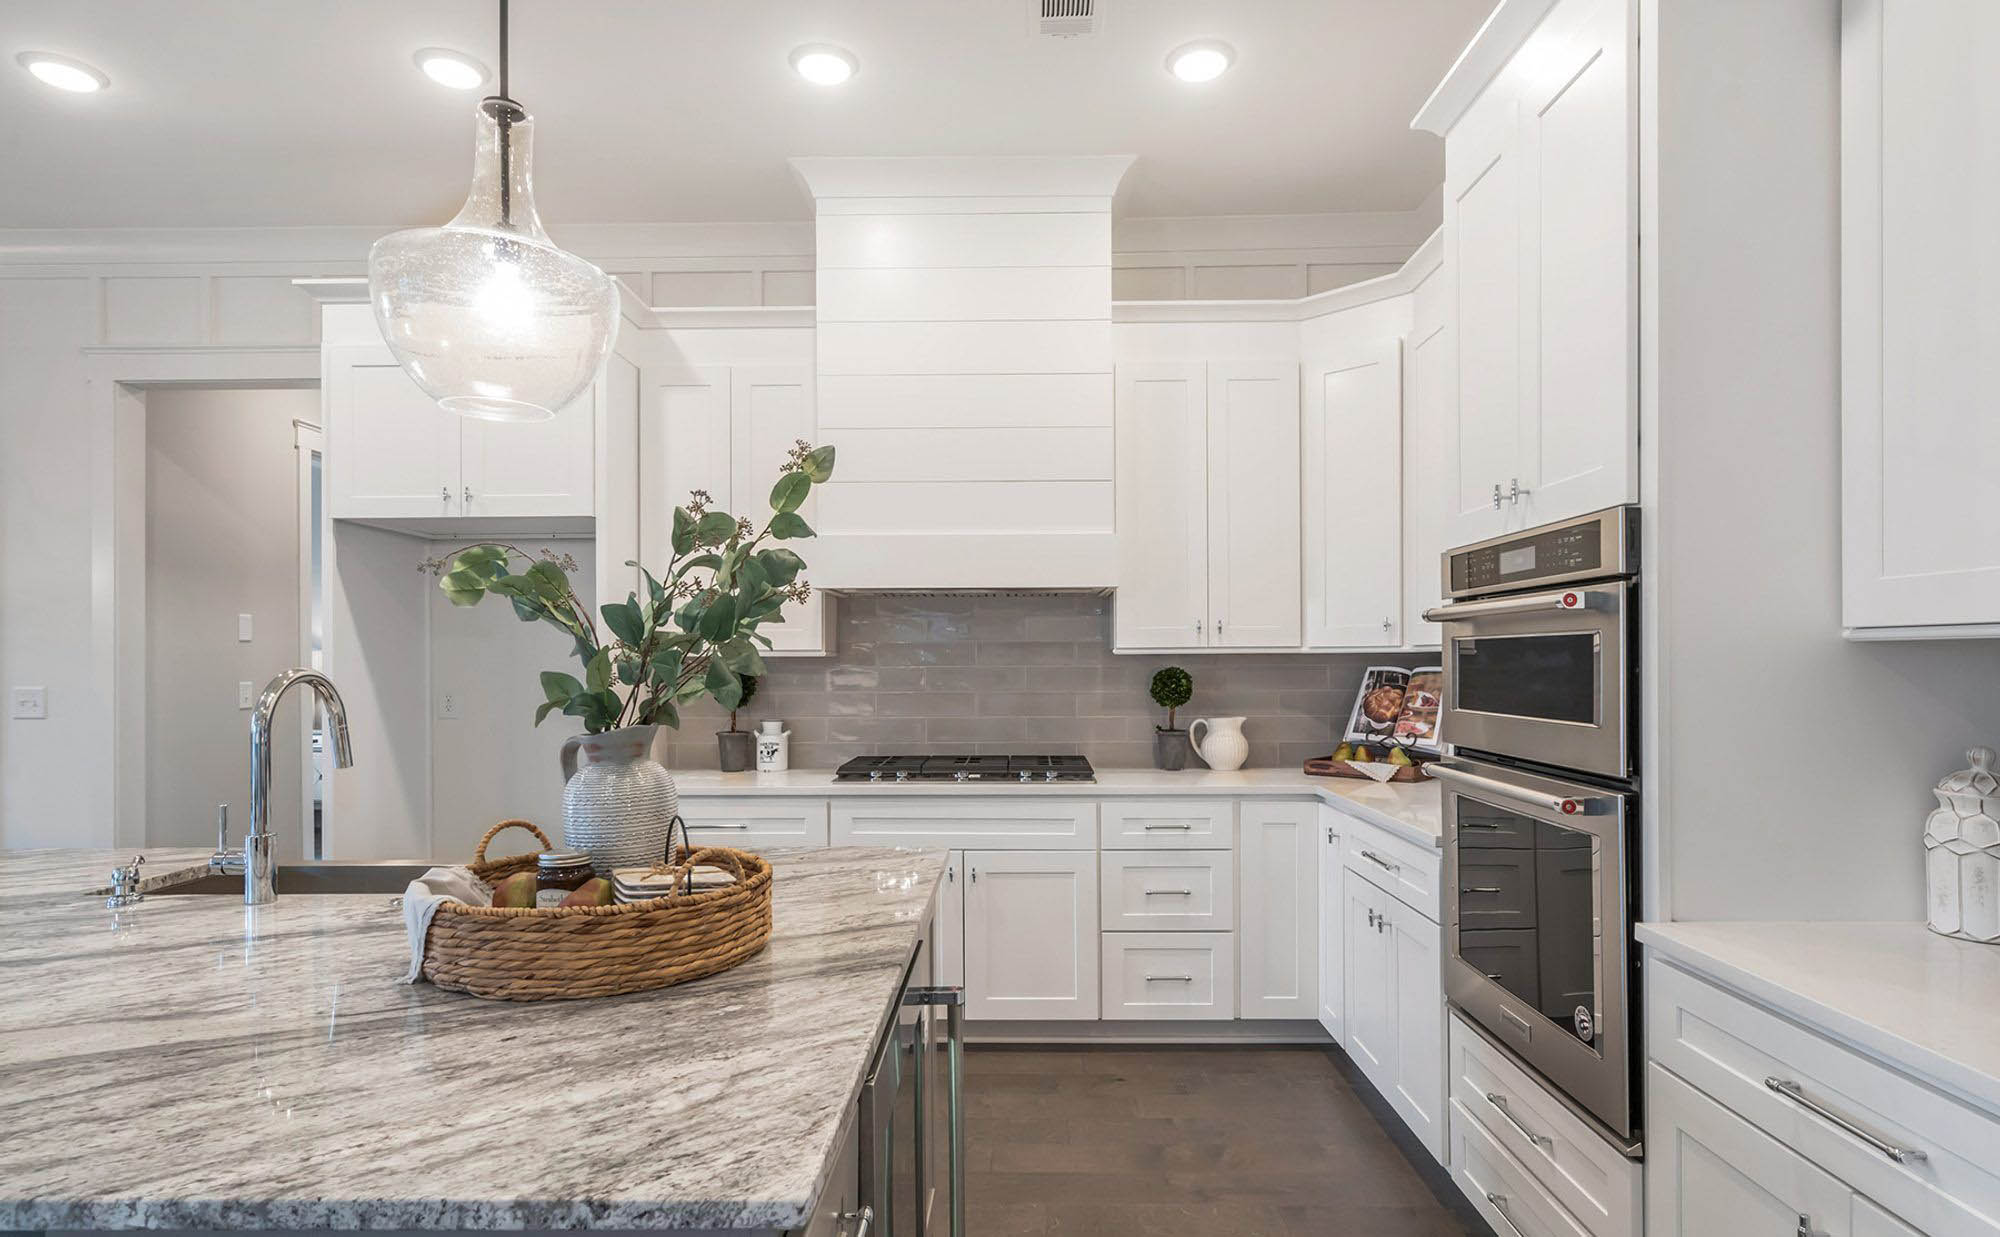 Beautiful white kitchen with both granite and quartz countertops.